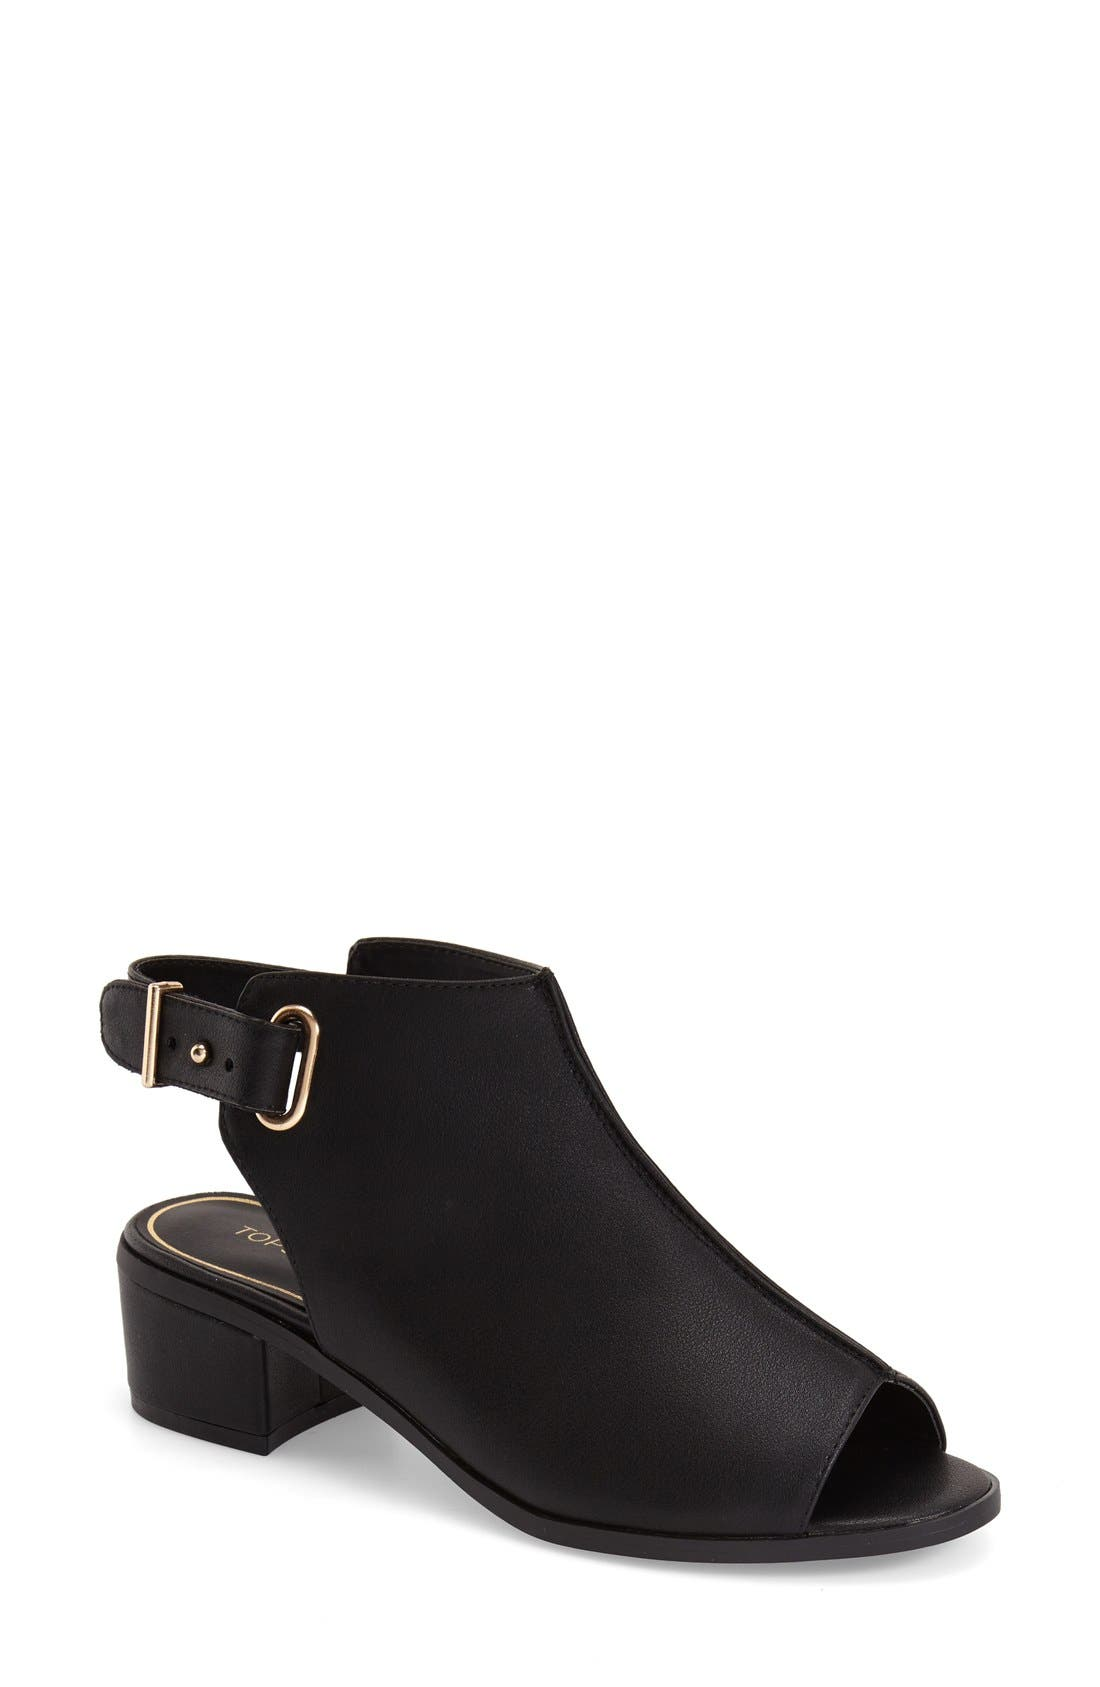 Alternate Image 1 Selected - Topshop 'Nix' Slingback Block Heel Sandal (Women)